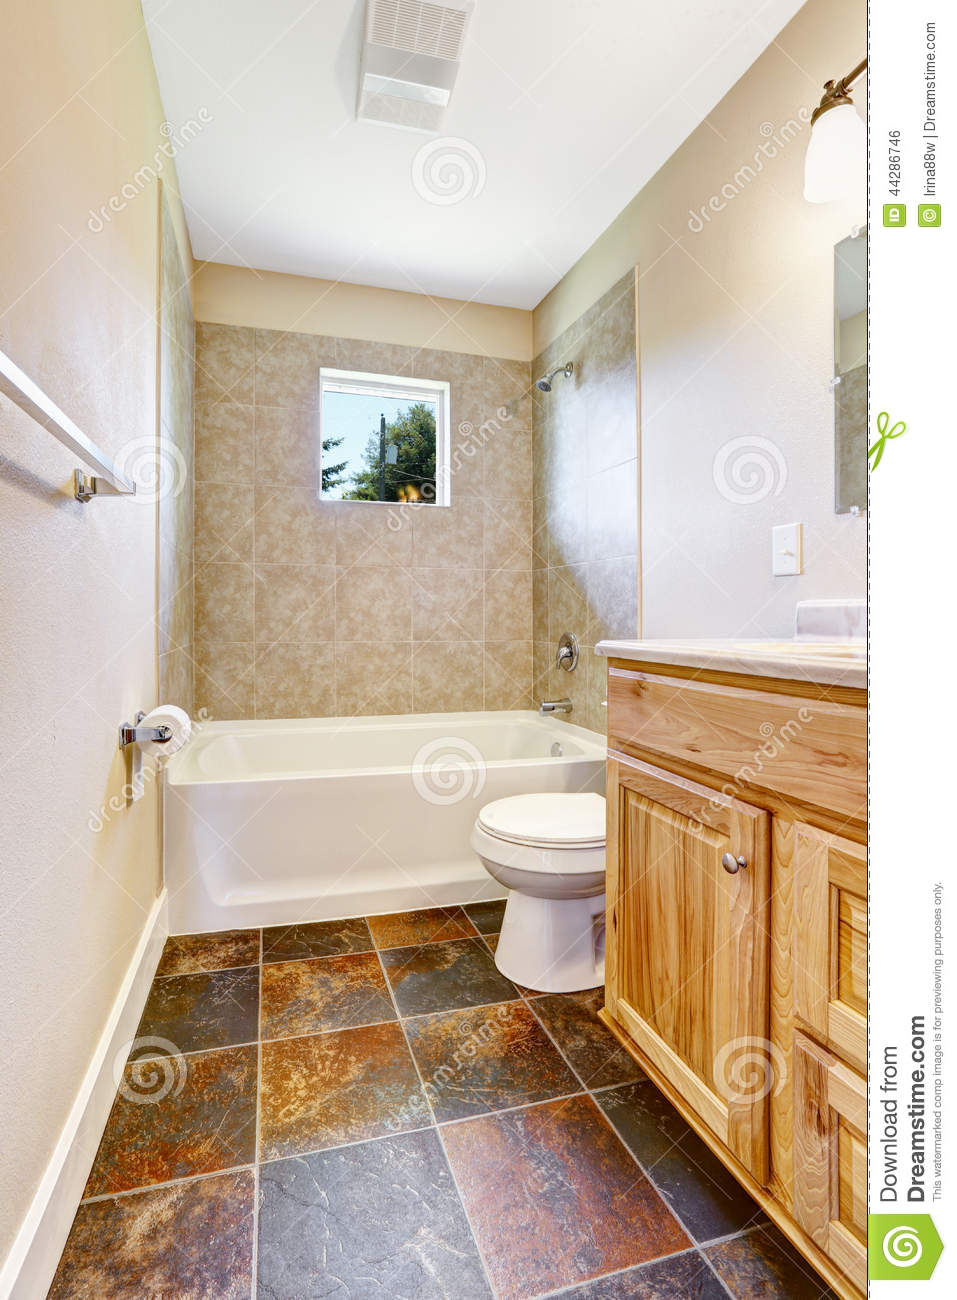 empty bathroom with tile floor royalty free stock photo